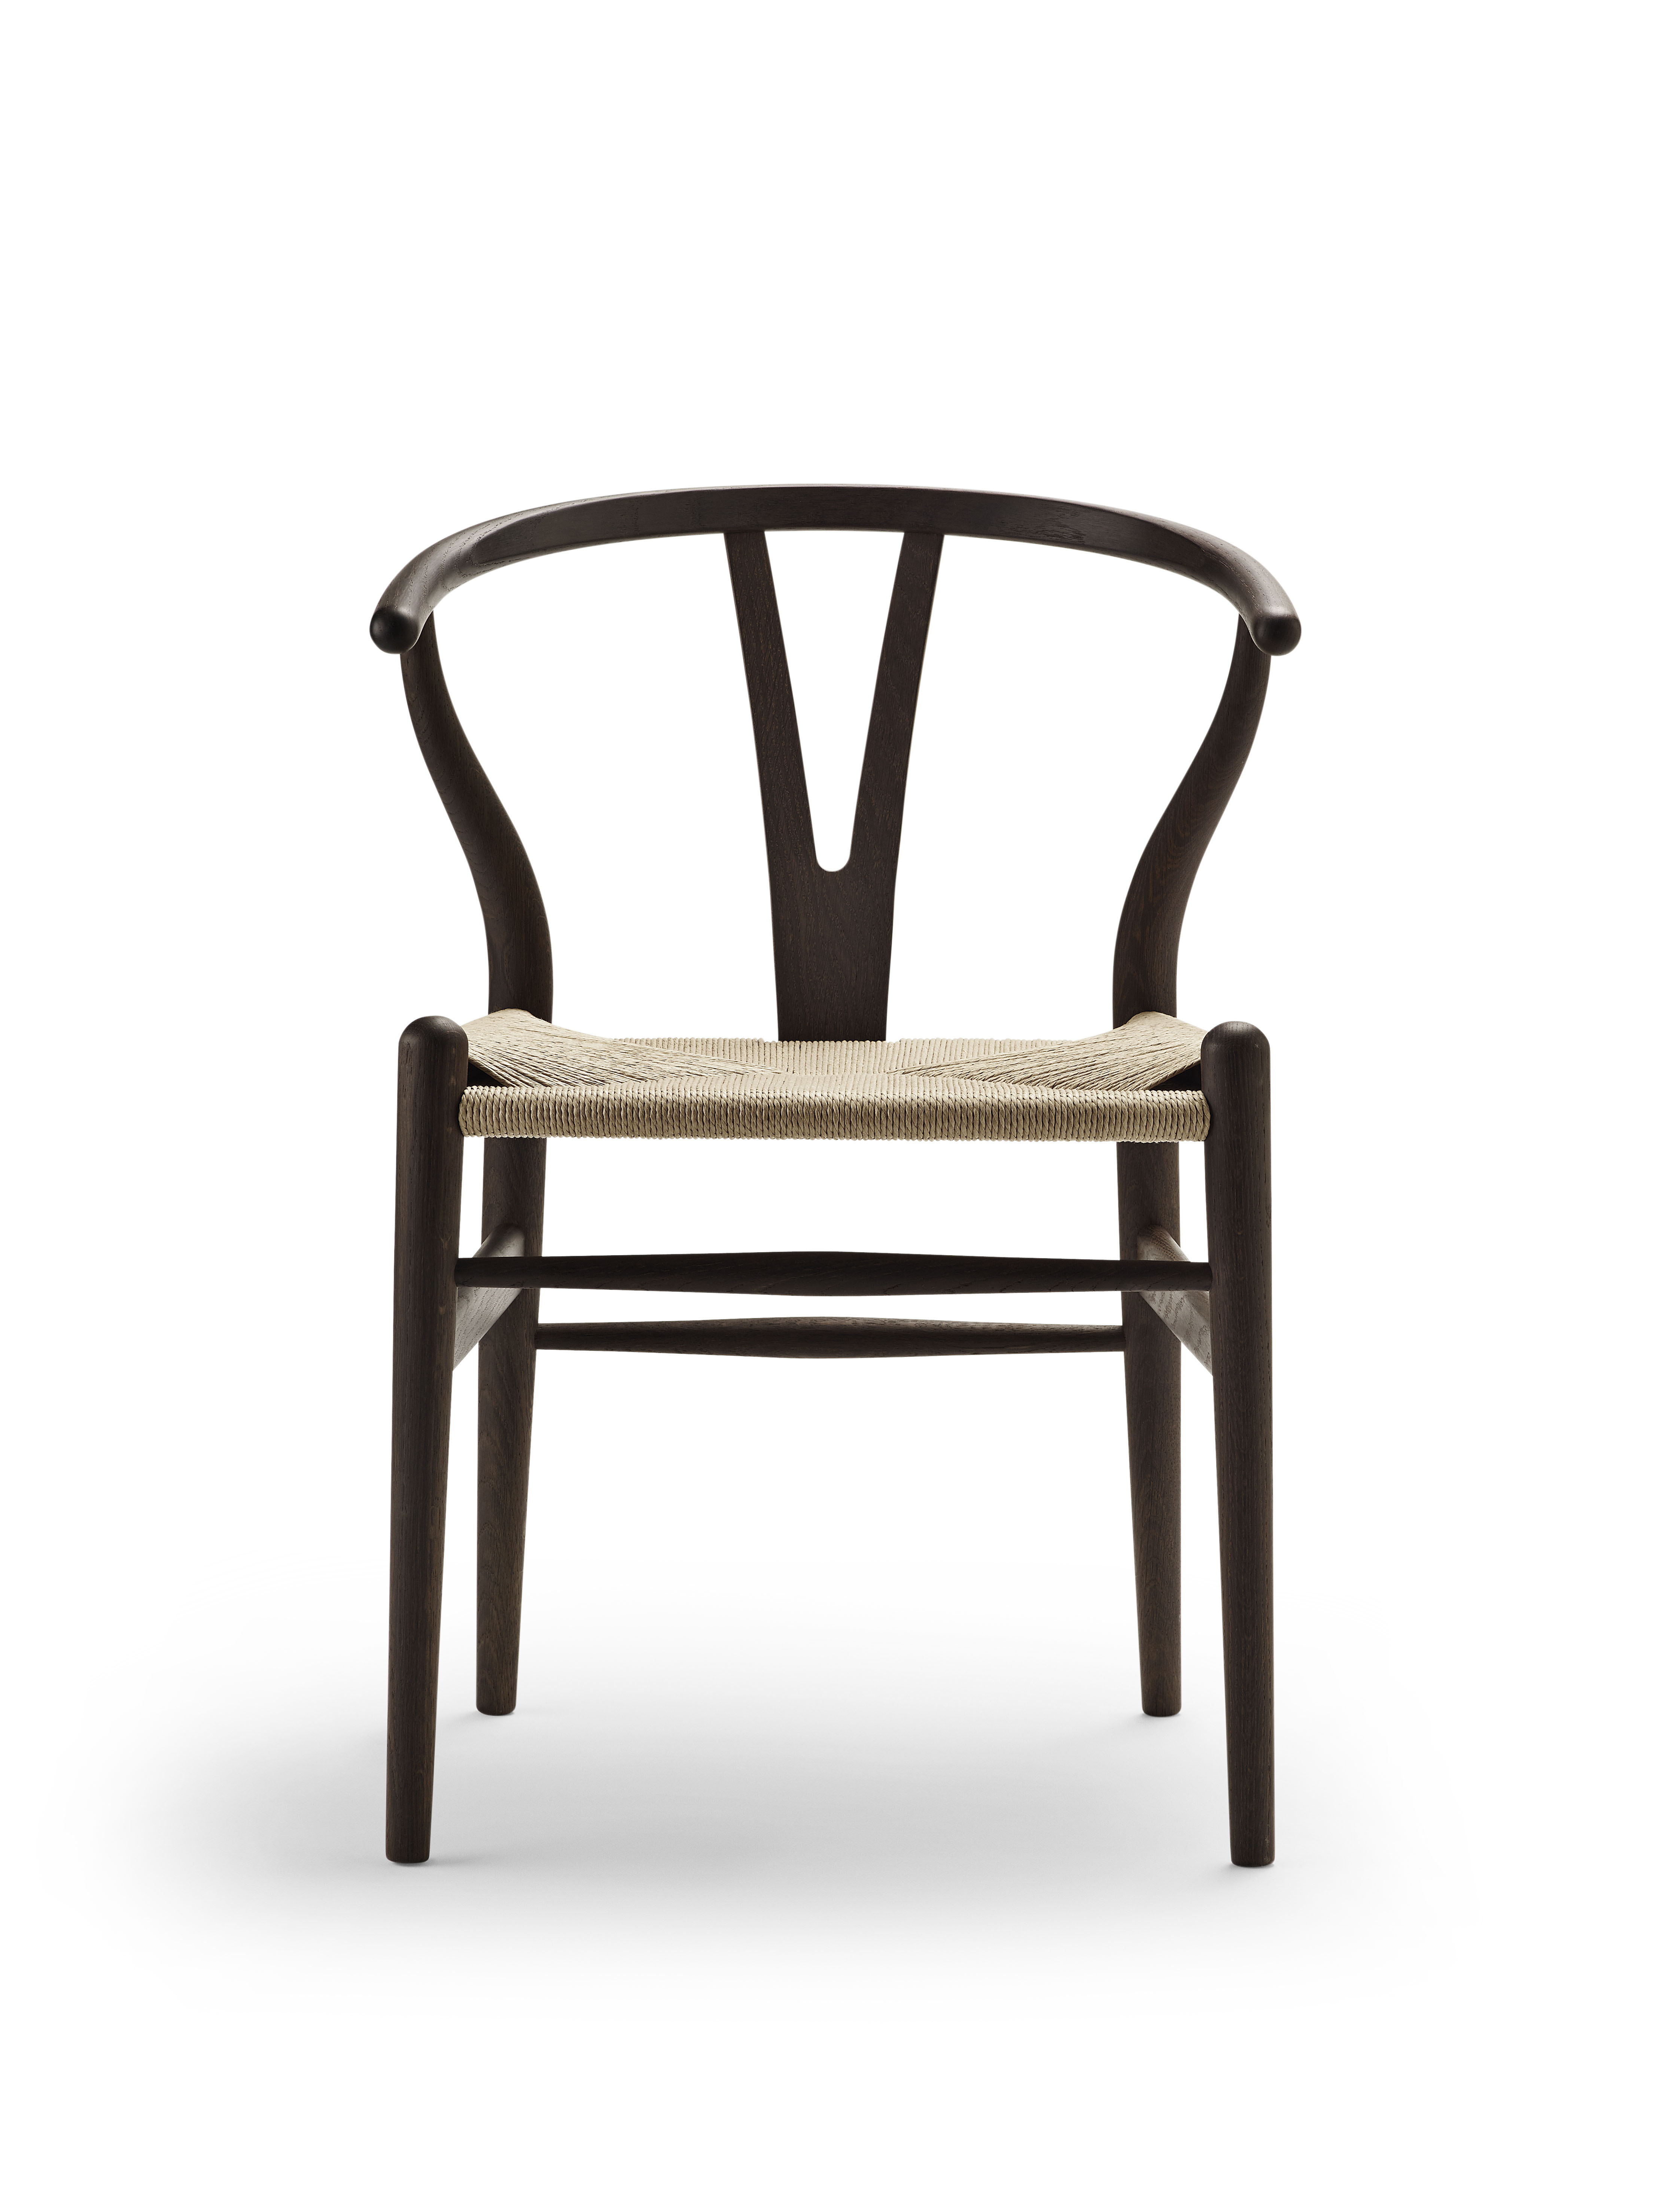 Wishbone Chair Hans J. Wegner